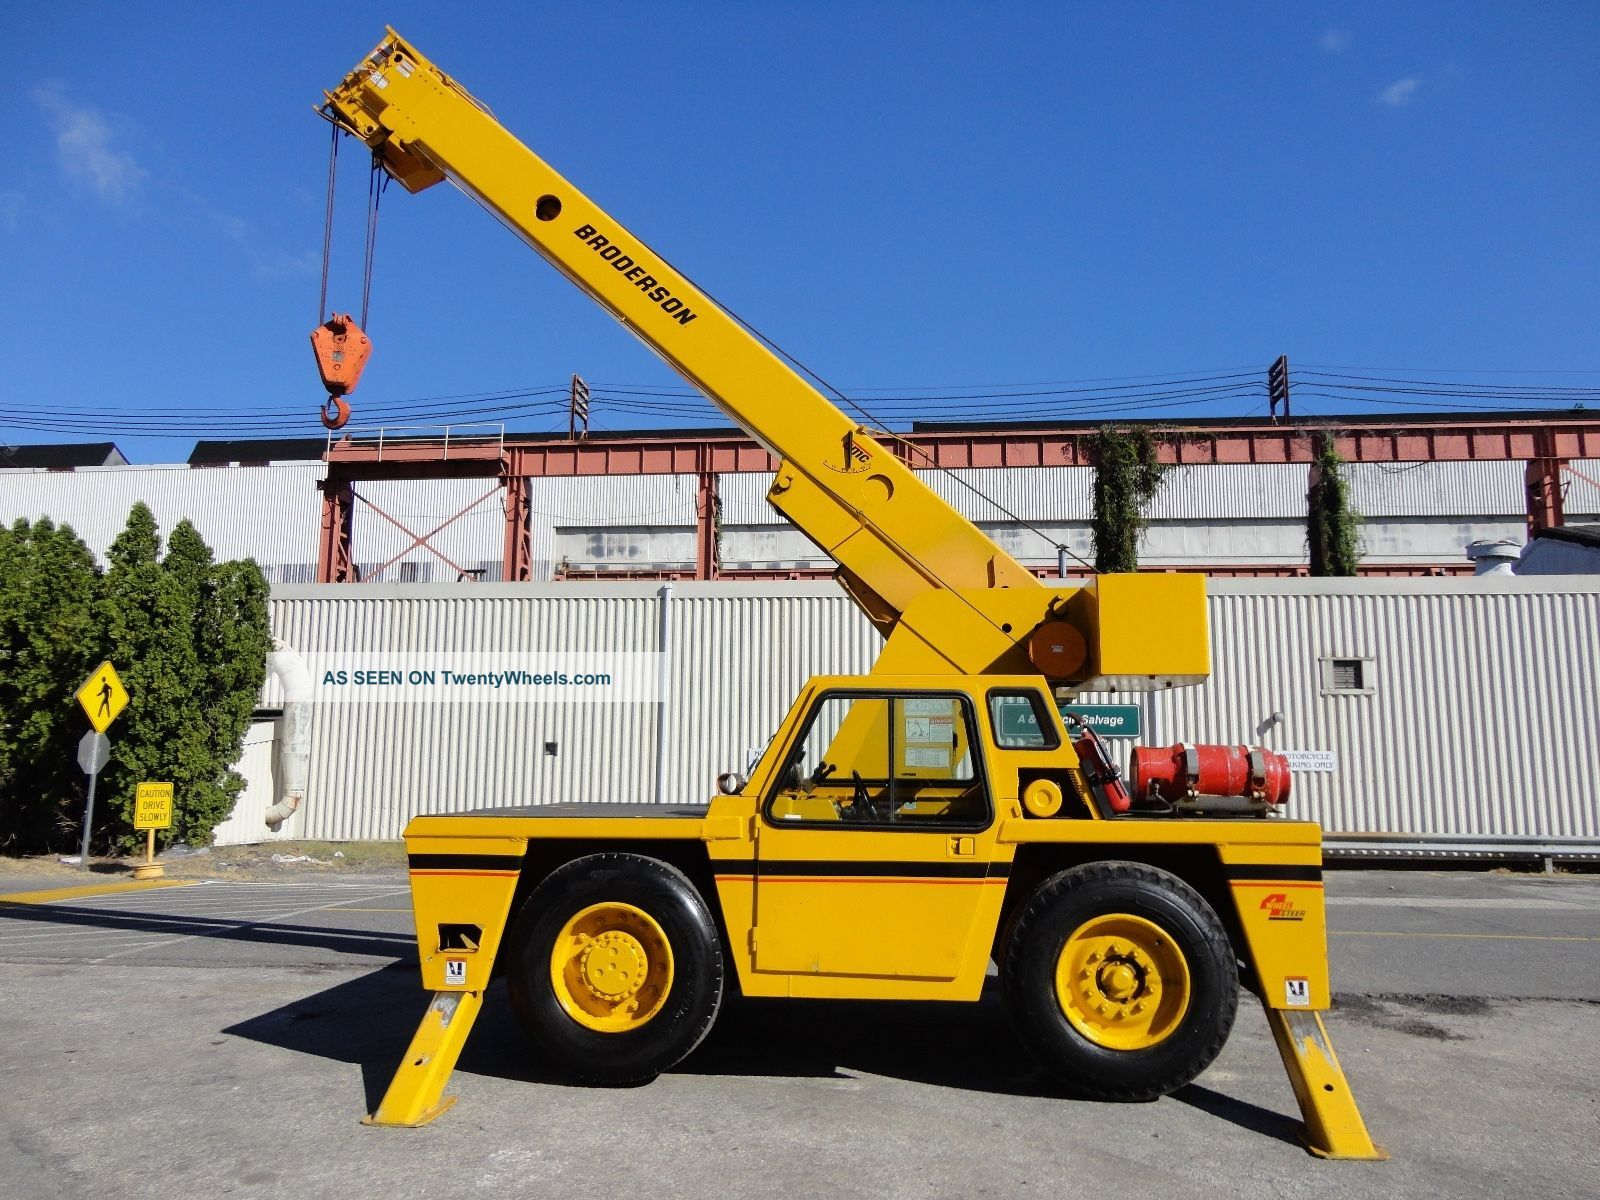 Broderson Ic 200 2b Carry Deck Crane - 15 Ton - Dual Fuel - Enclosed Cab Cranes photo